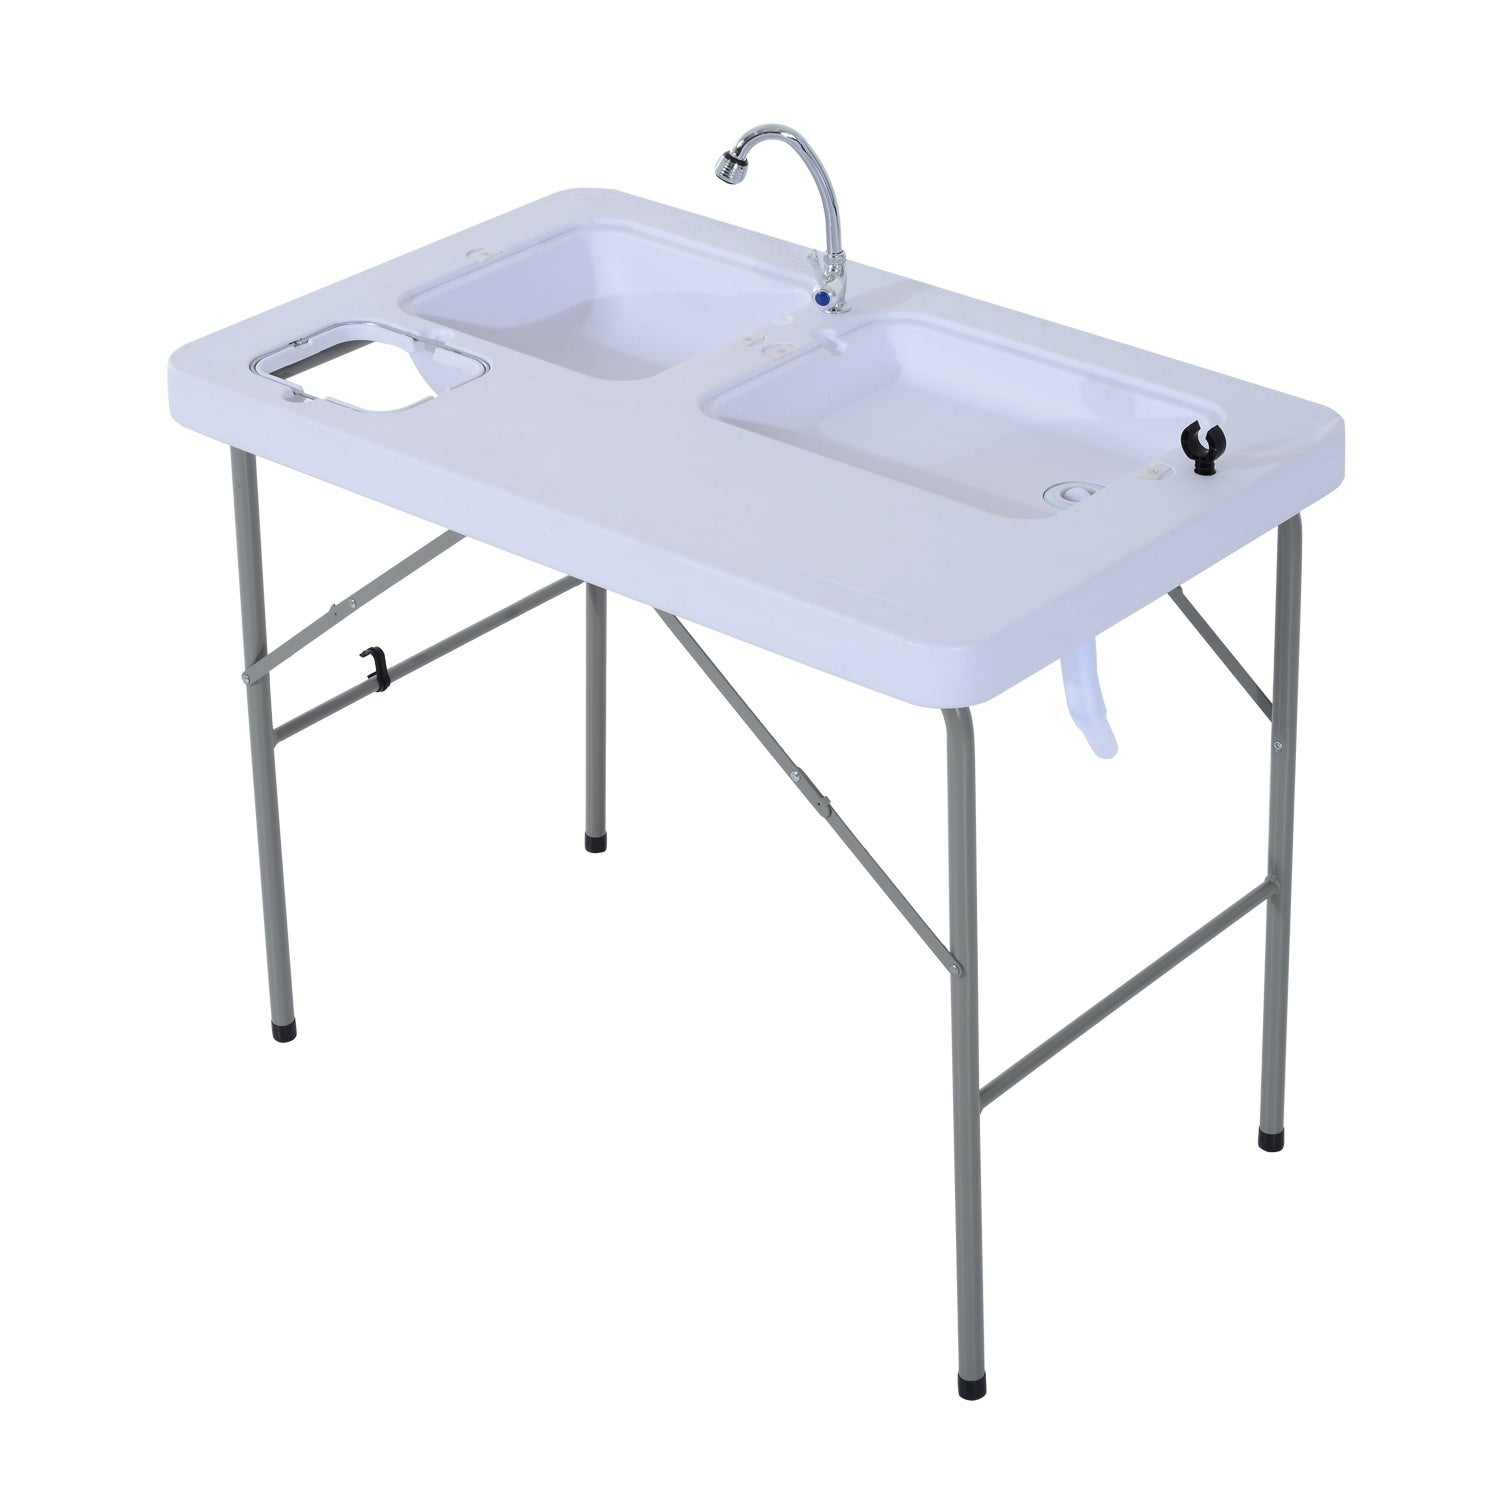 Shop Outsunny Portable Folding Camping Table with Faucet - Free ...